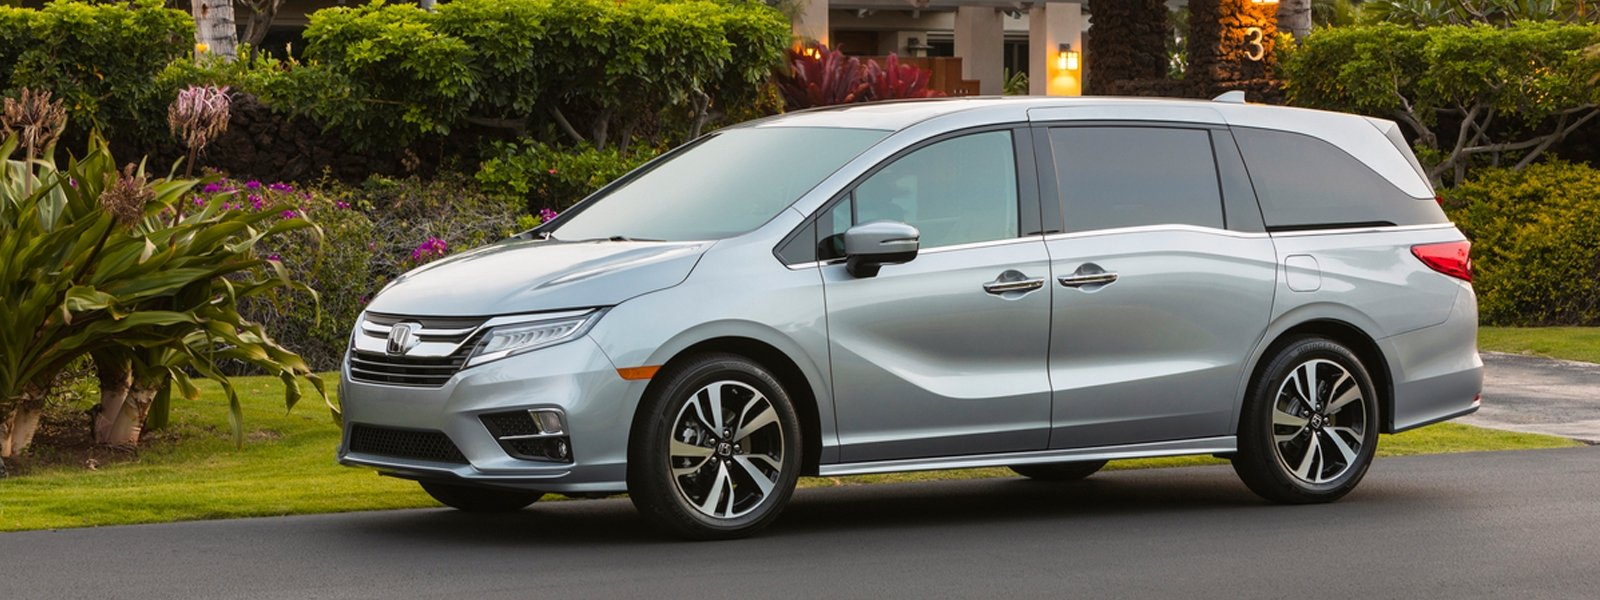 2018 honda odyssey specifications features. Black Bedroom Furniture Sets. Home Design Ideas